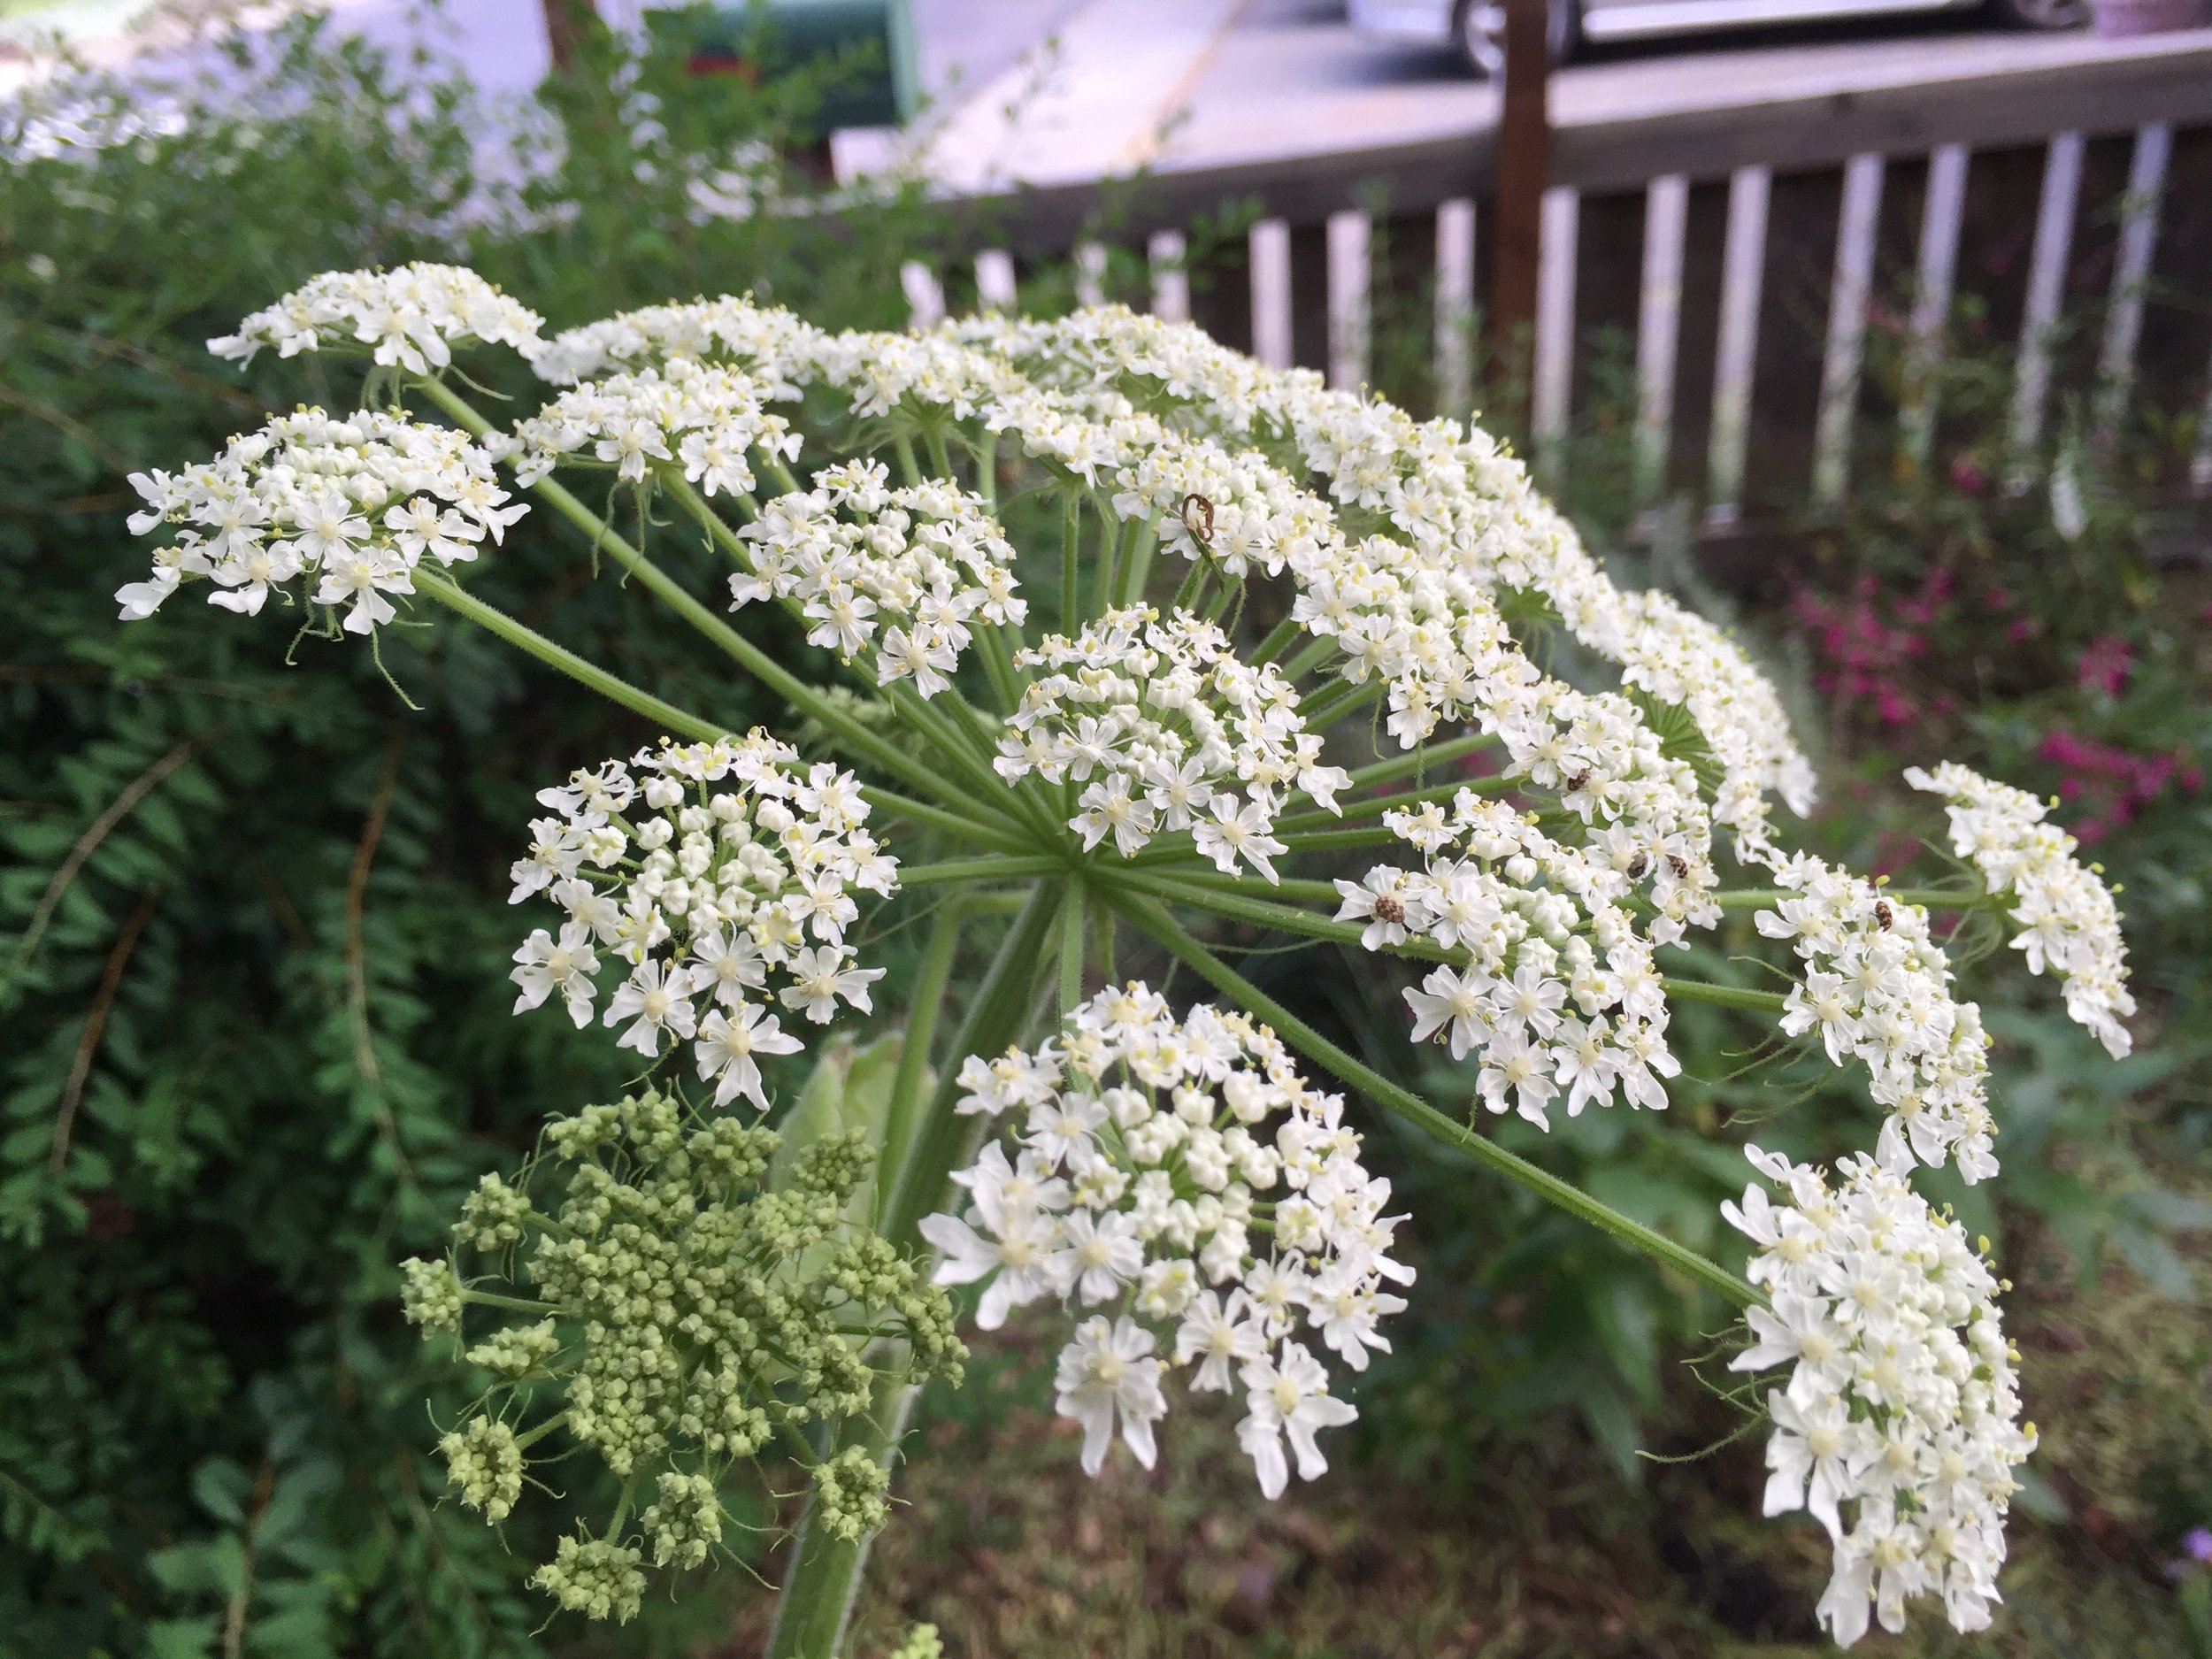 Heracleum maximum,  or Common Cow Parsnip